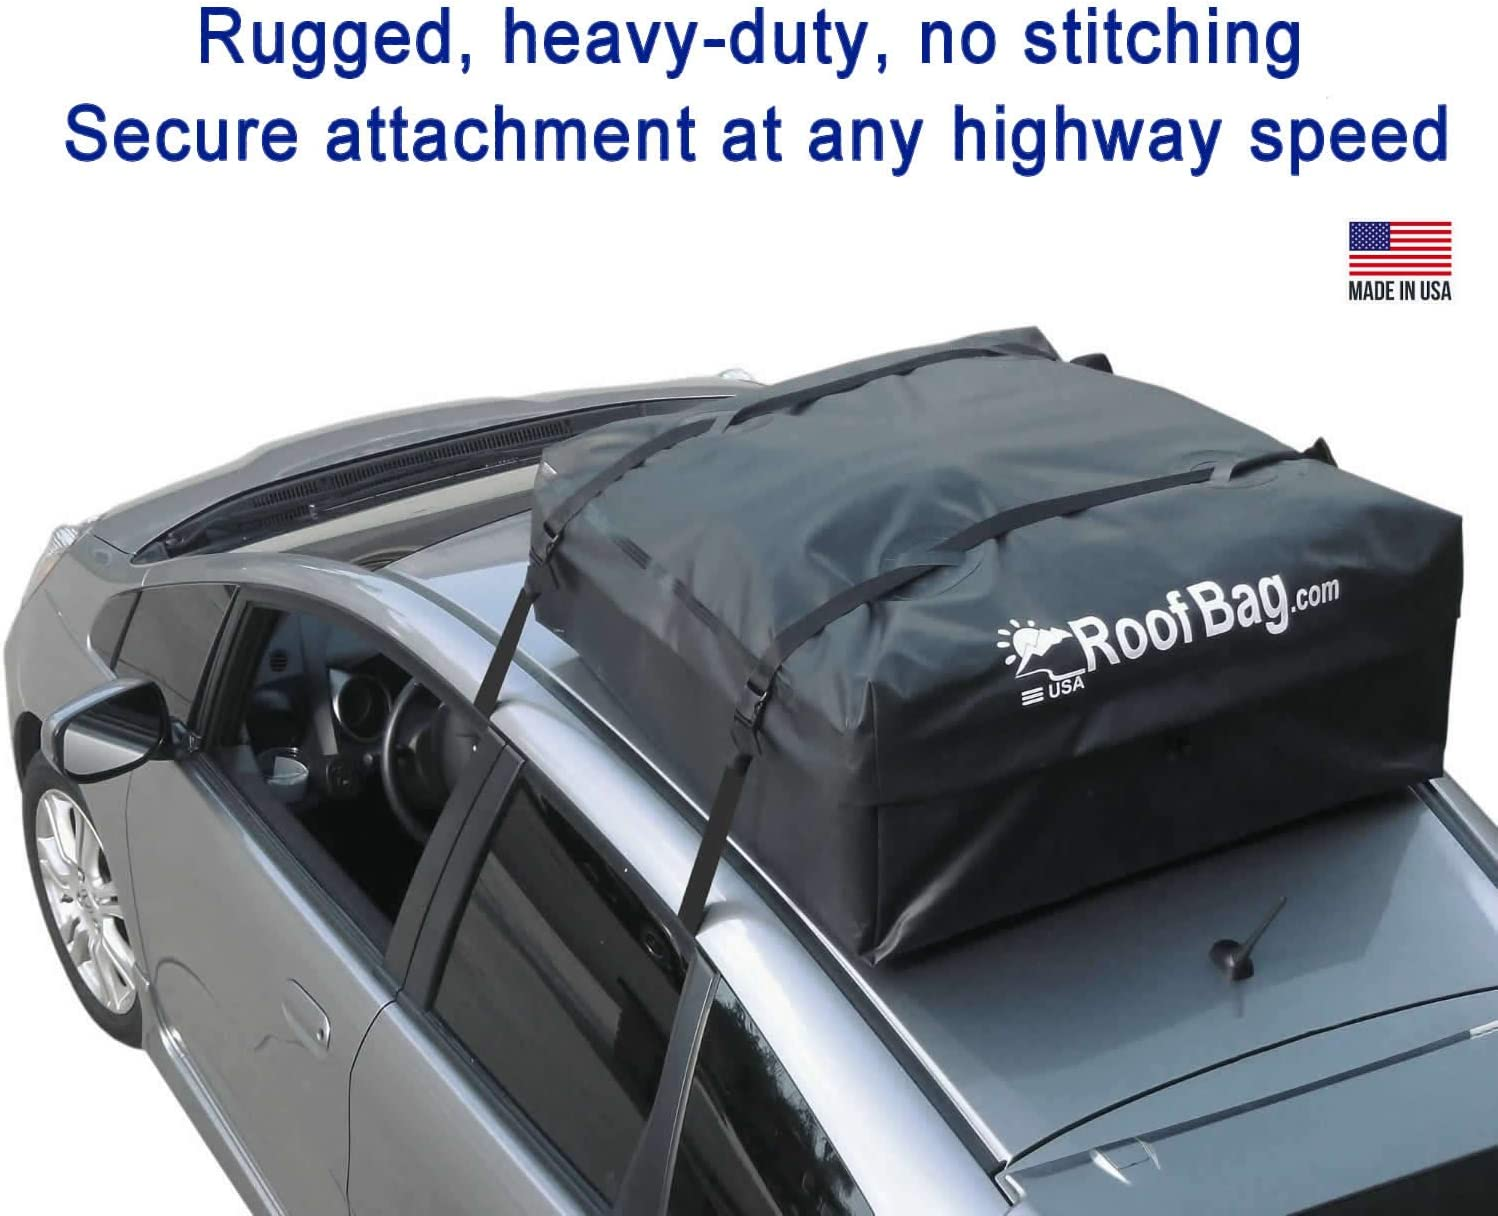 Car Top Carriers for Vehicles with Racks or Without Racks Made in USA RoofBag Rooftop Cargo Carrier Includes Roof Protective Mat 11 Cubic Feet 2 Year Warranty